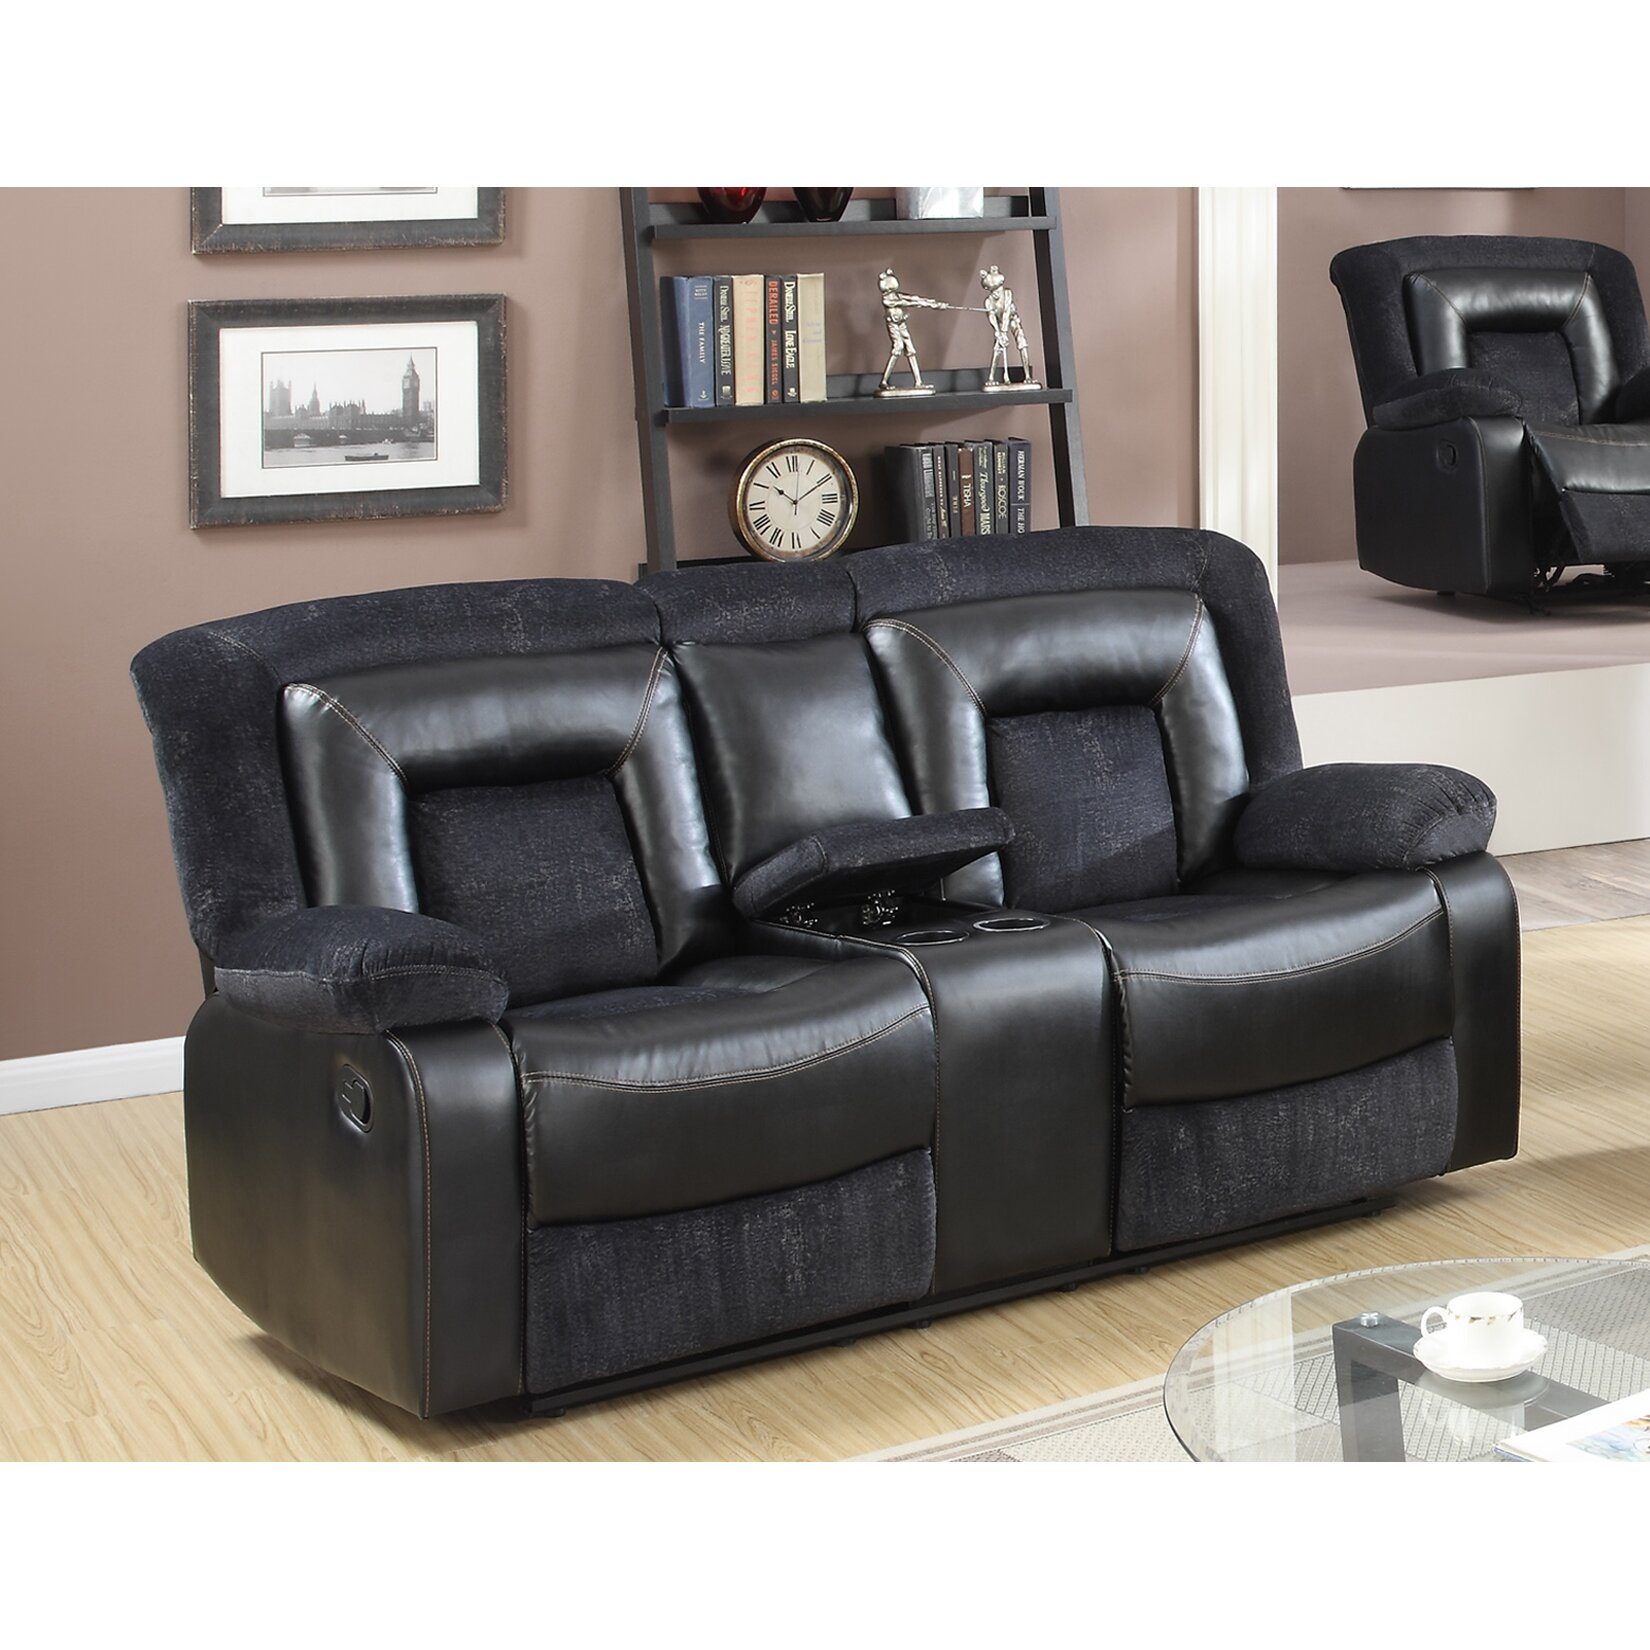 Best quality furniture recliner loveseat wayfair for Best quality furniture